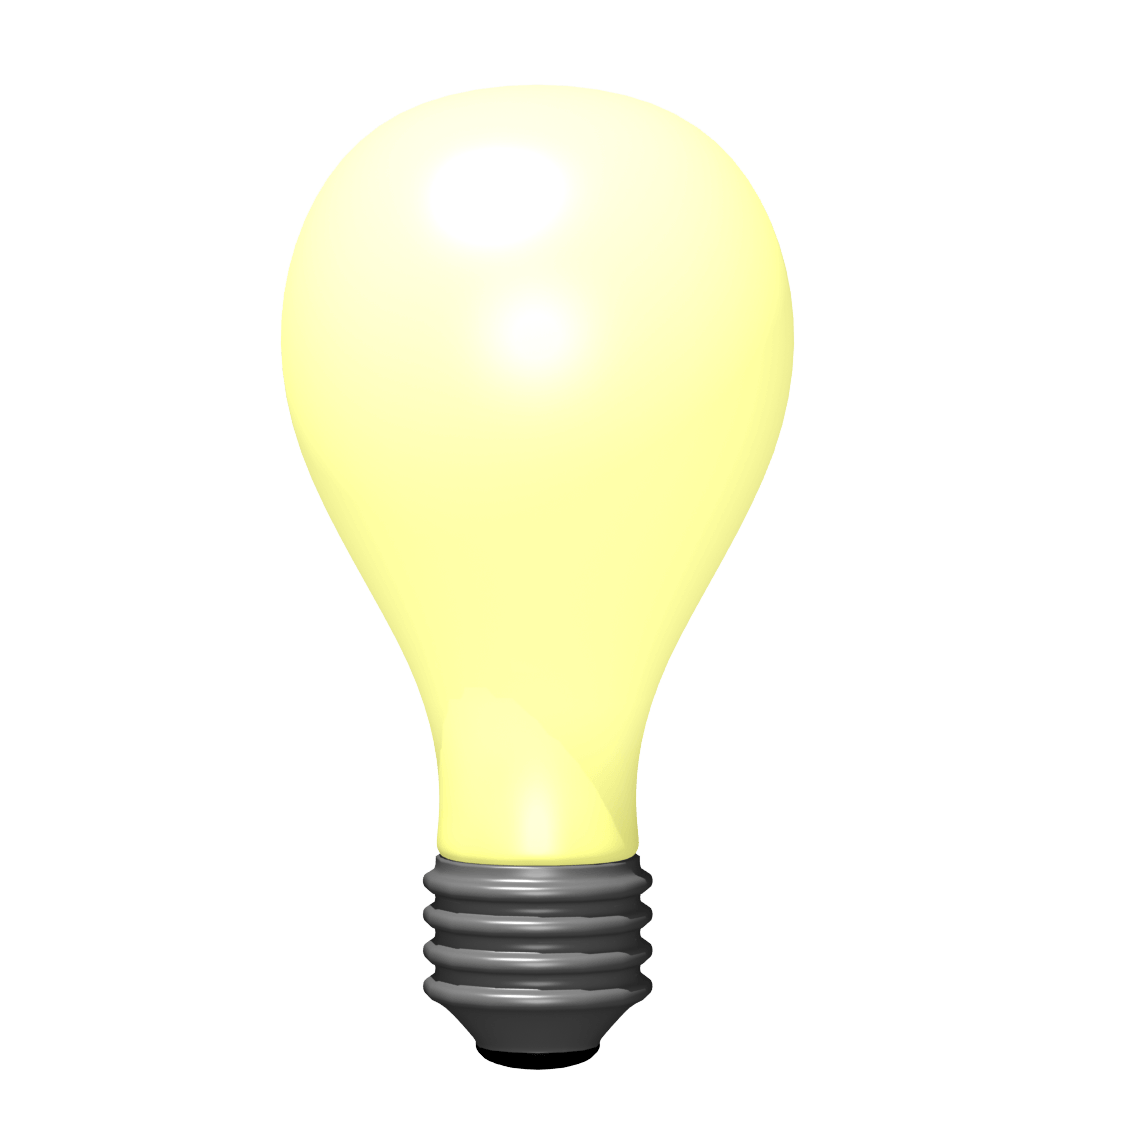 Bulb Png Image PNG Image